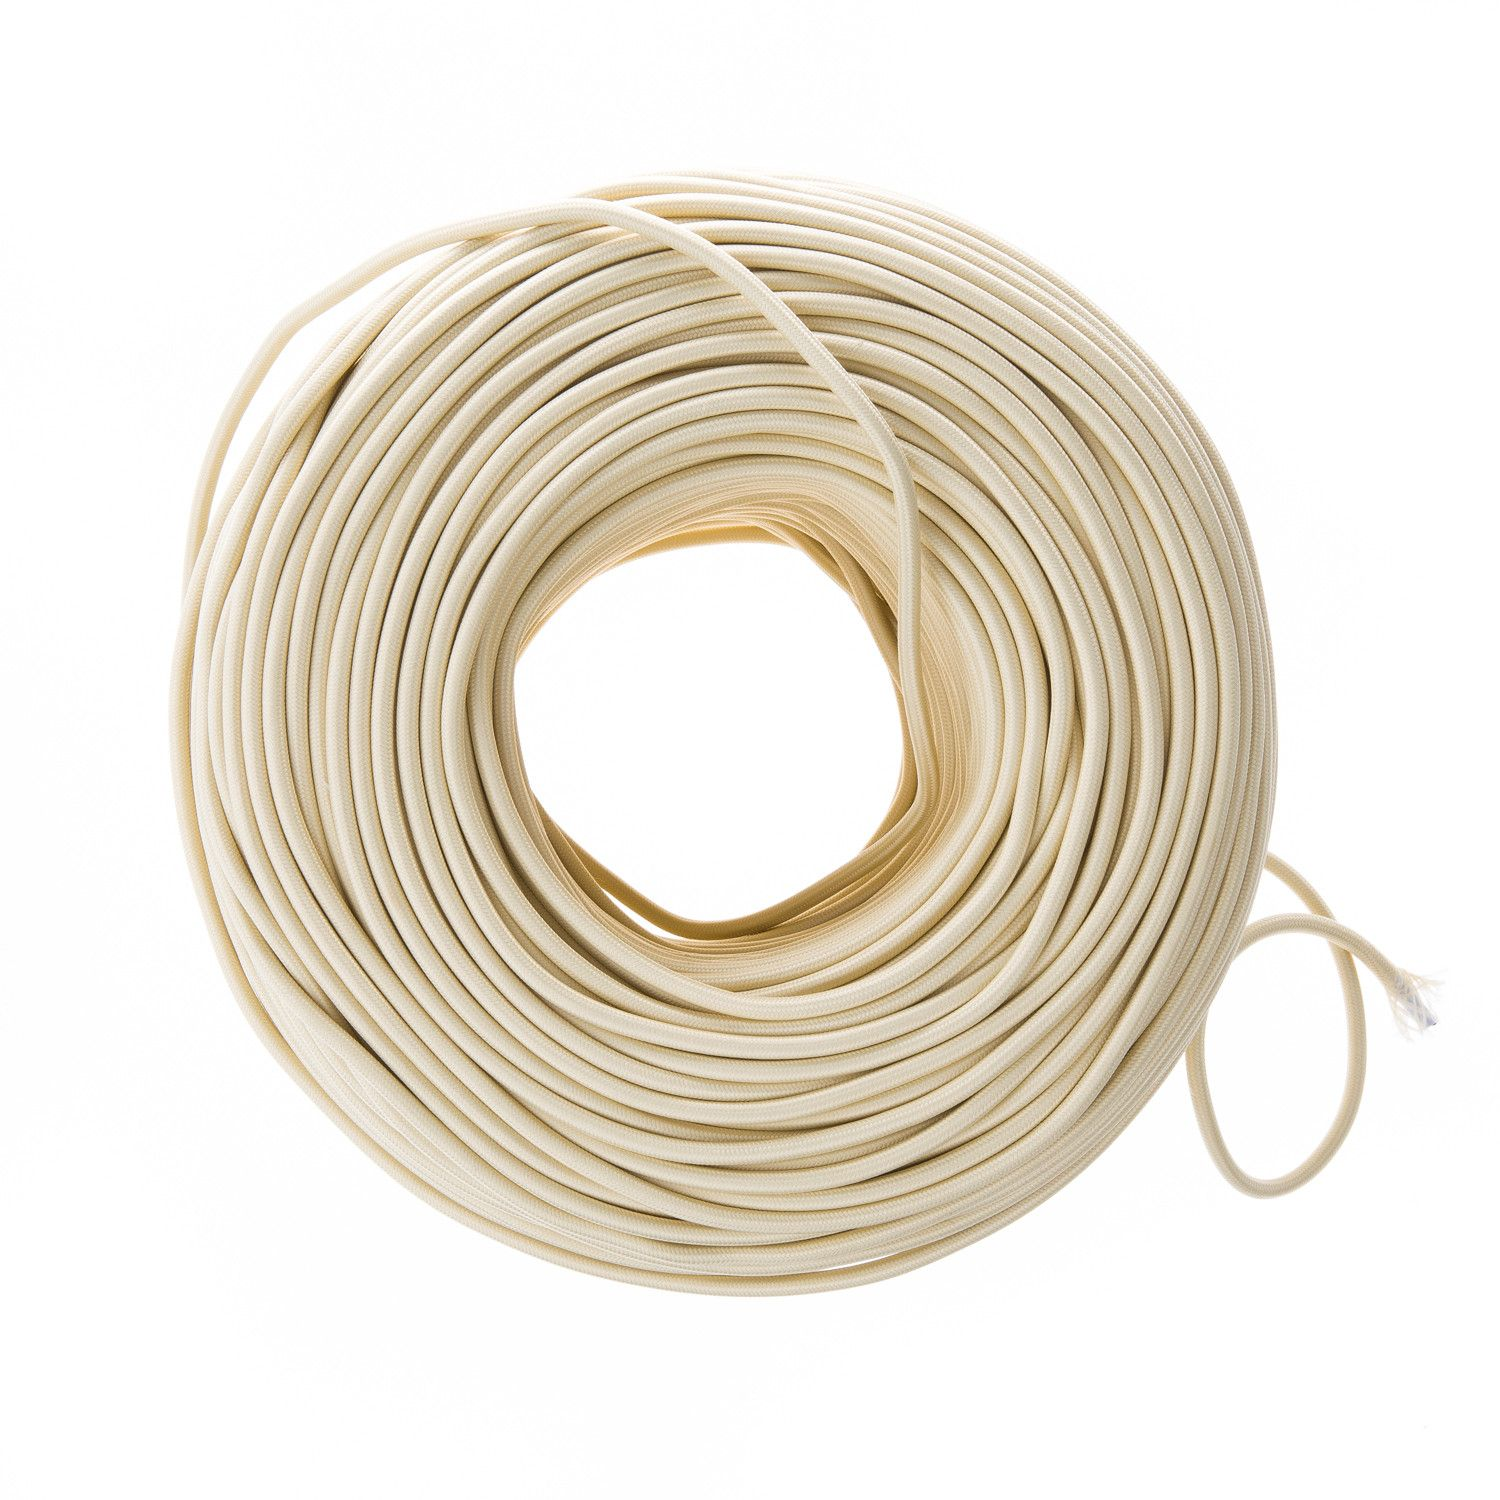 Cloth Covered Electrical Wire - Sand | Color Cord Company